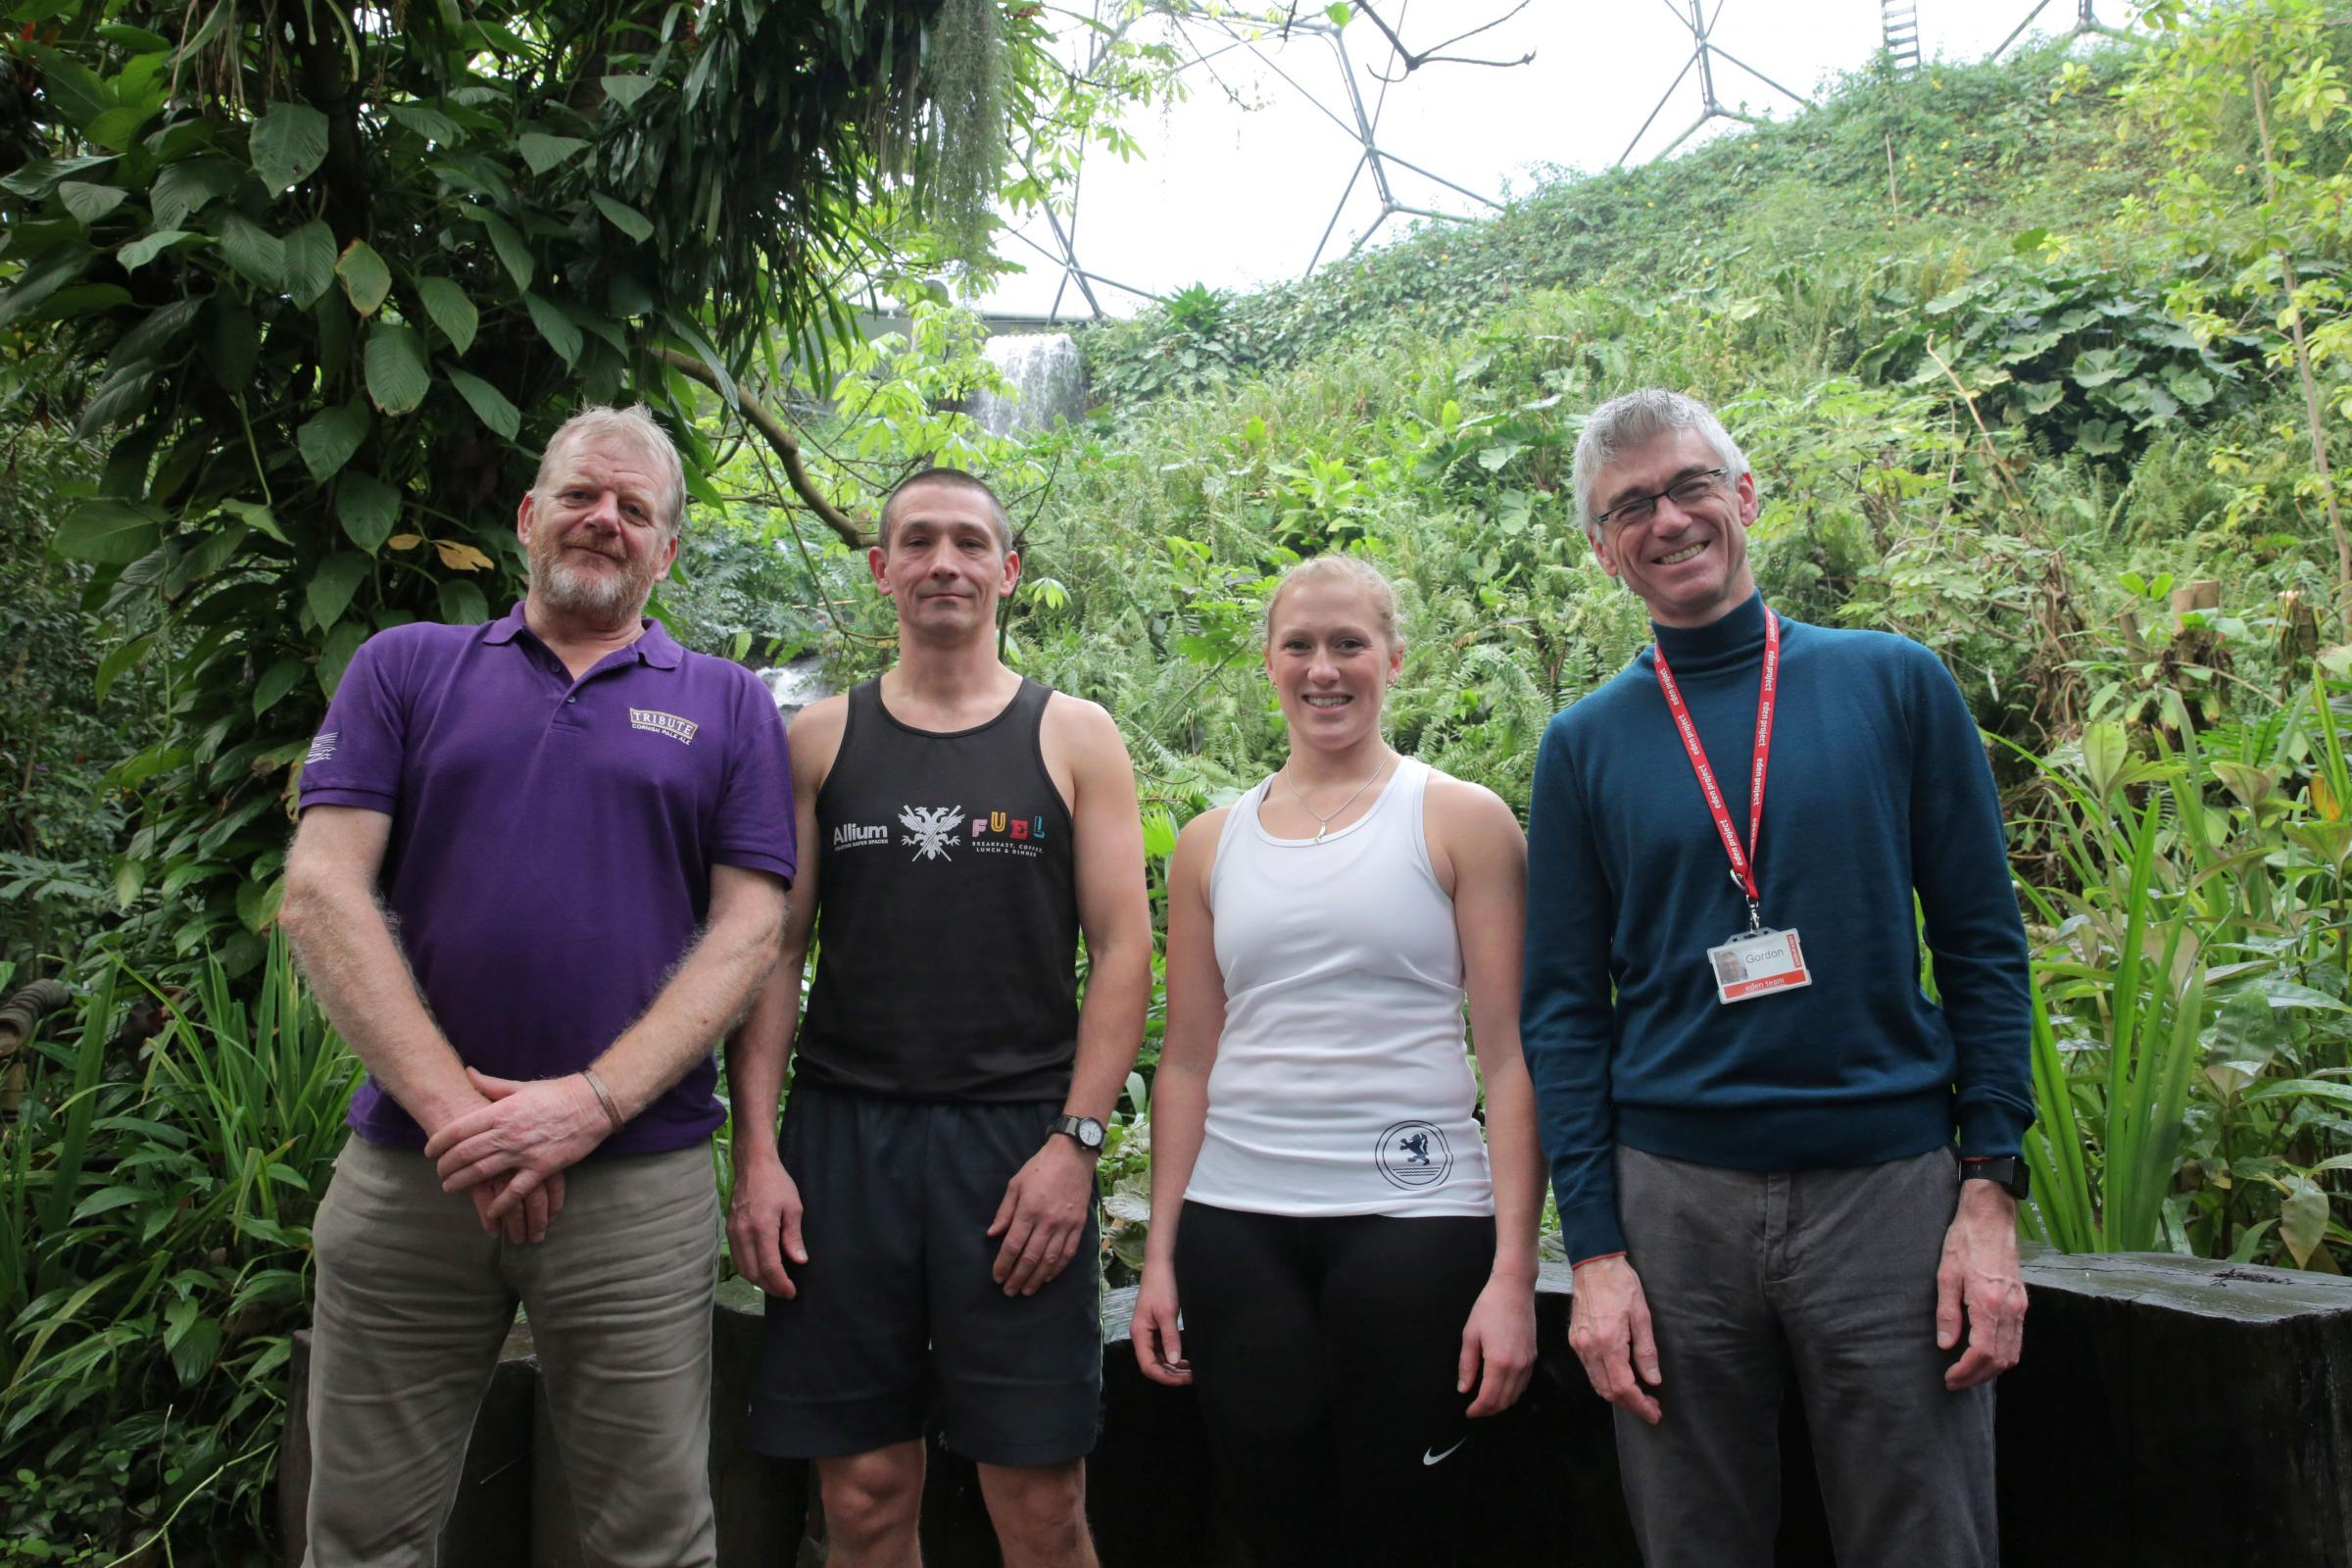 :  From left, Shane Sullivan, Chair of the CPGA trustees, Simon Moses of Falmouth Pilot Gig Club, Kate Bourn of Caradon Gig Club and Eden Chief Executive Gordon Seabright, in the Rainforest Biome at Eden.